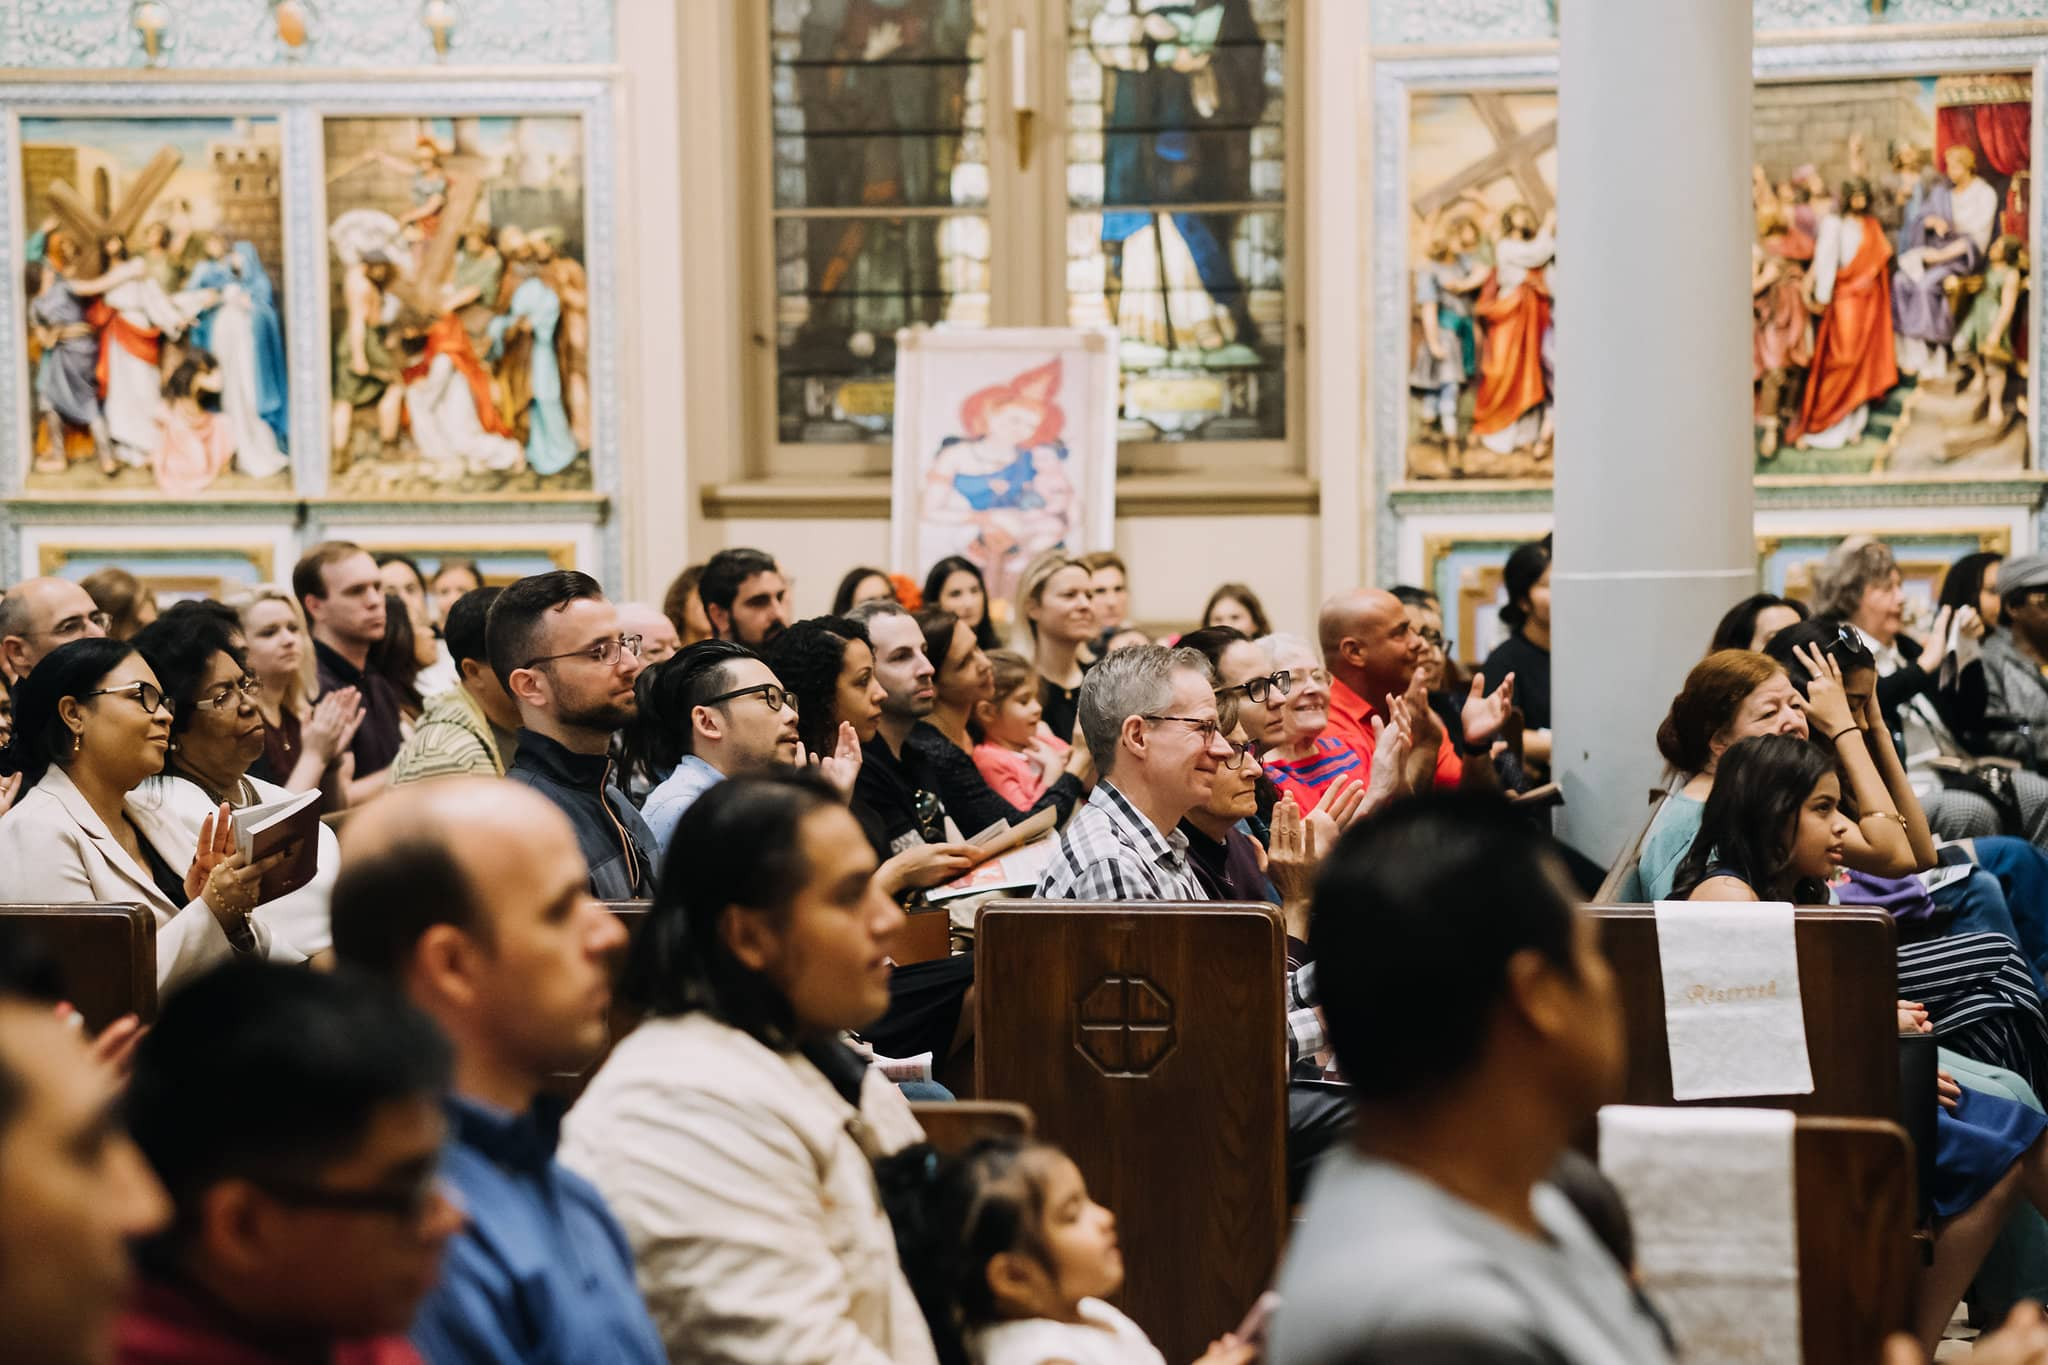 community-diversity-mass-st-francis-de-sales-church-new-york-city.jpg